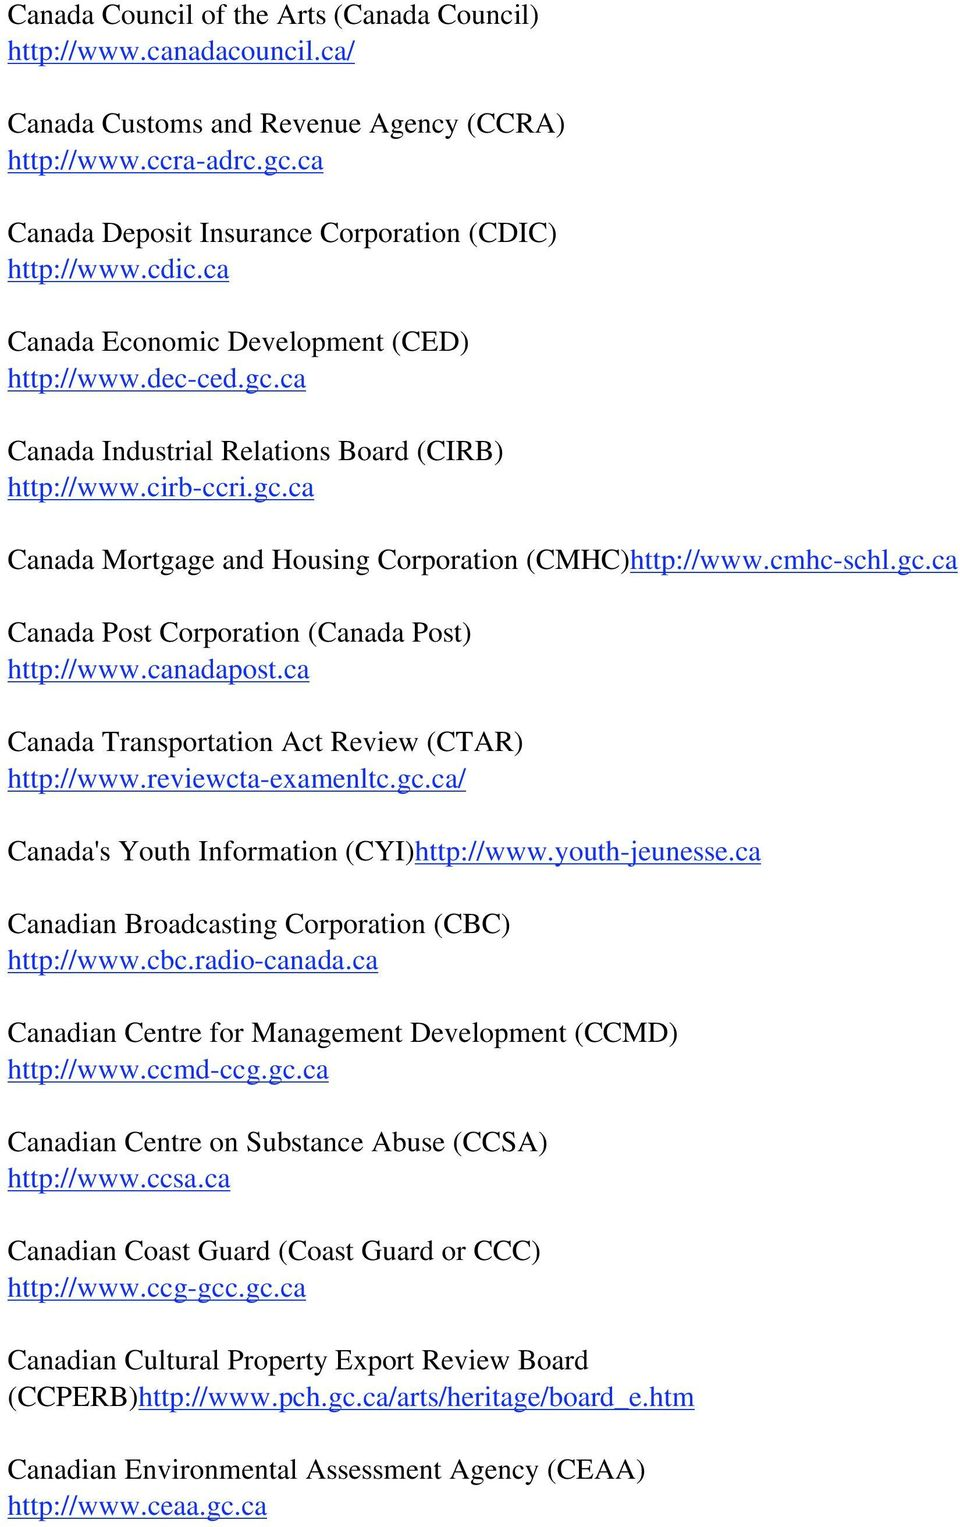 cmhc-schl.gc.ca Canada Post Corporation (Canada Post) http://www.canadapost.ca Canada Transportation Act Review (CTAR) http://www.reviewcta-examenltc.gc.ca/ Canada's Youth Information (CYI)http://www.